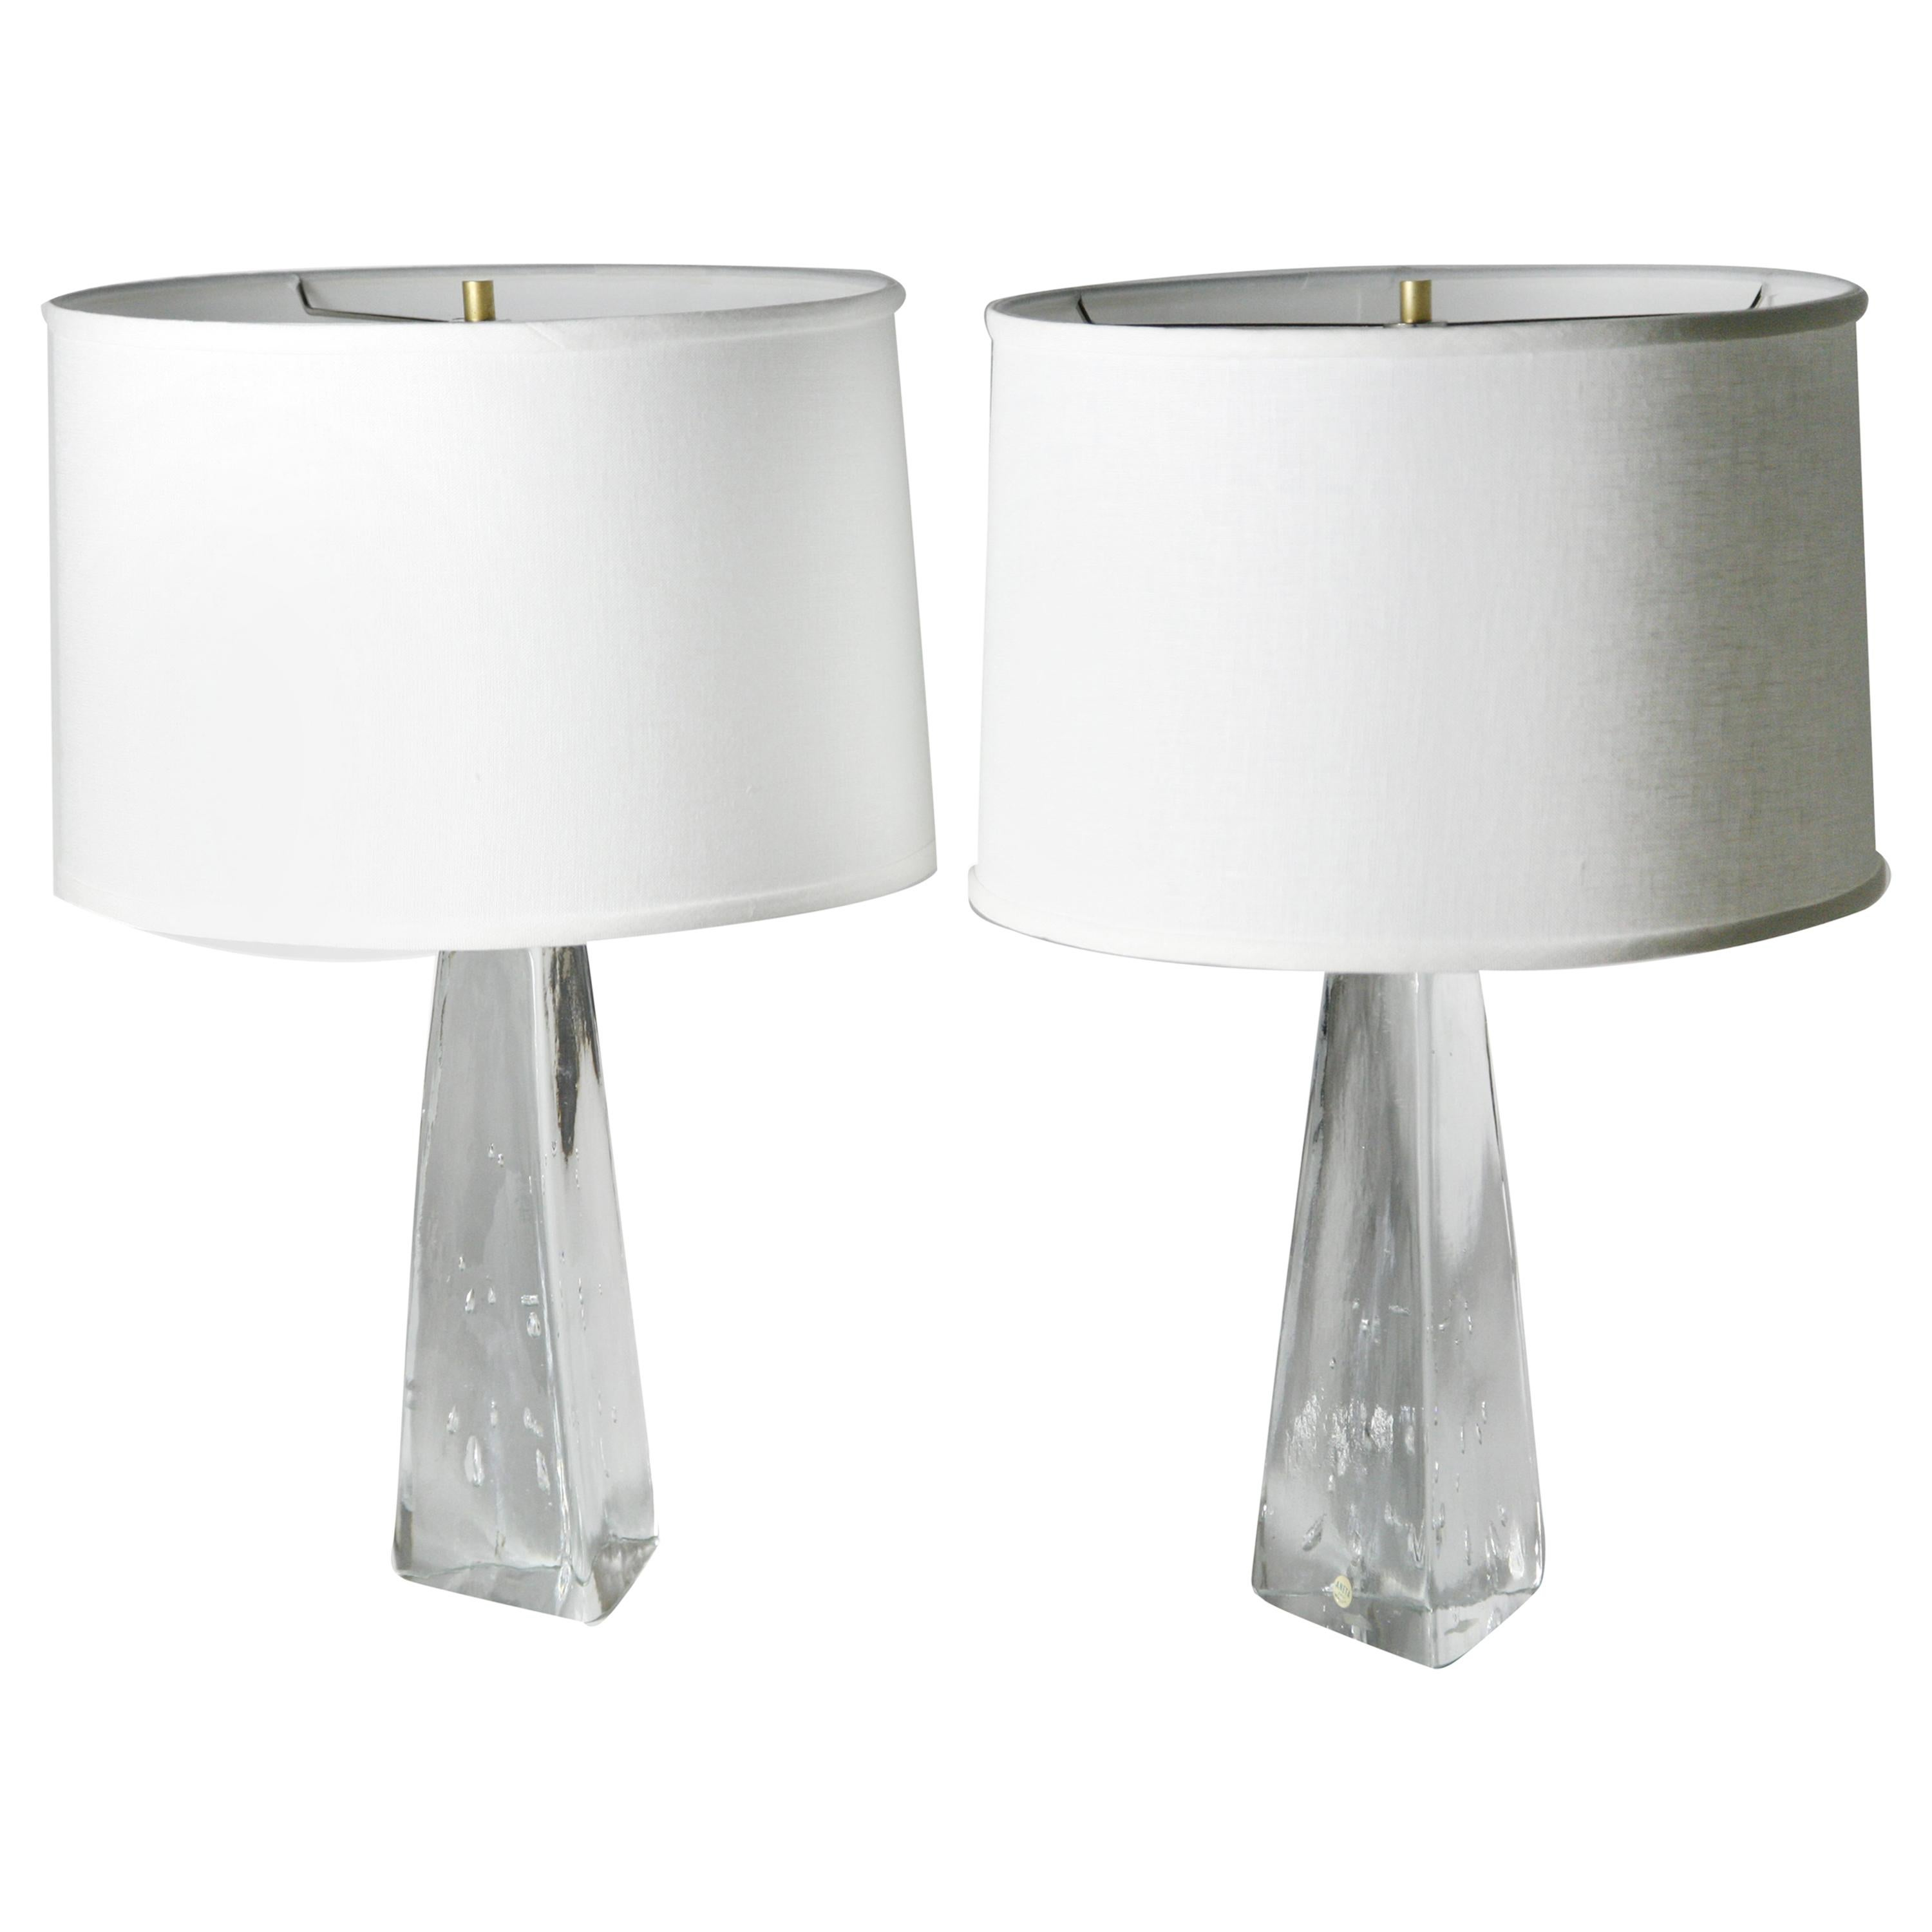 Pair of Triangular Solid Clear Aneta Lamps, Sweden, 1980